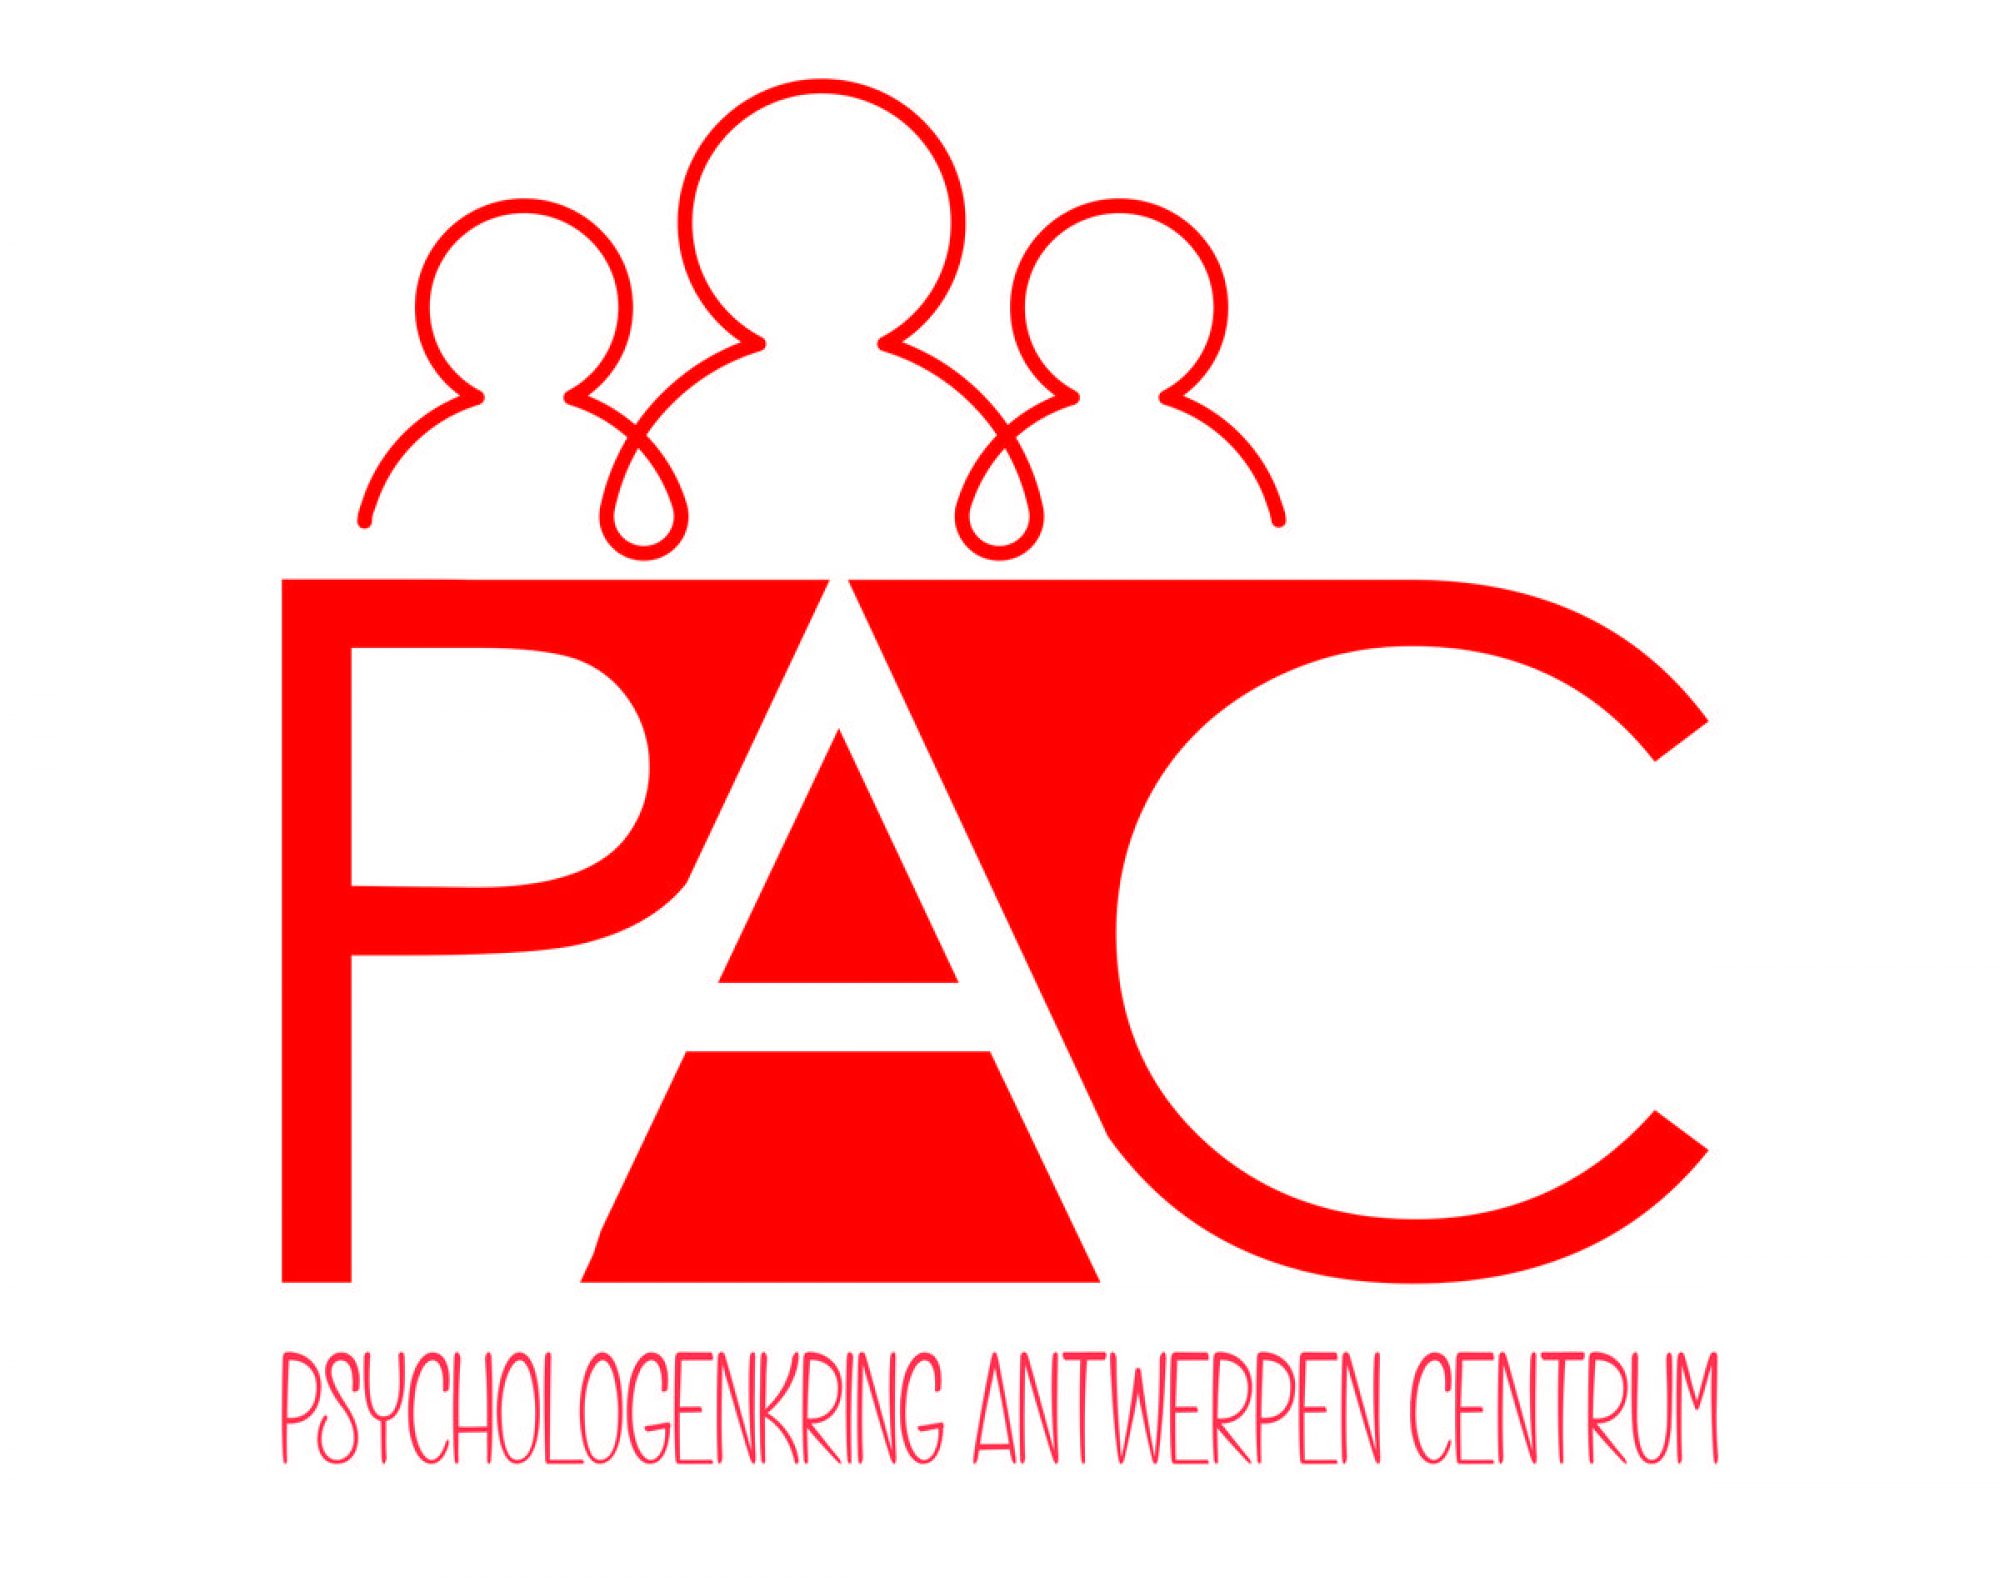 Psychologenkring Antwerpen Centrum - PAC -